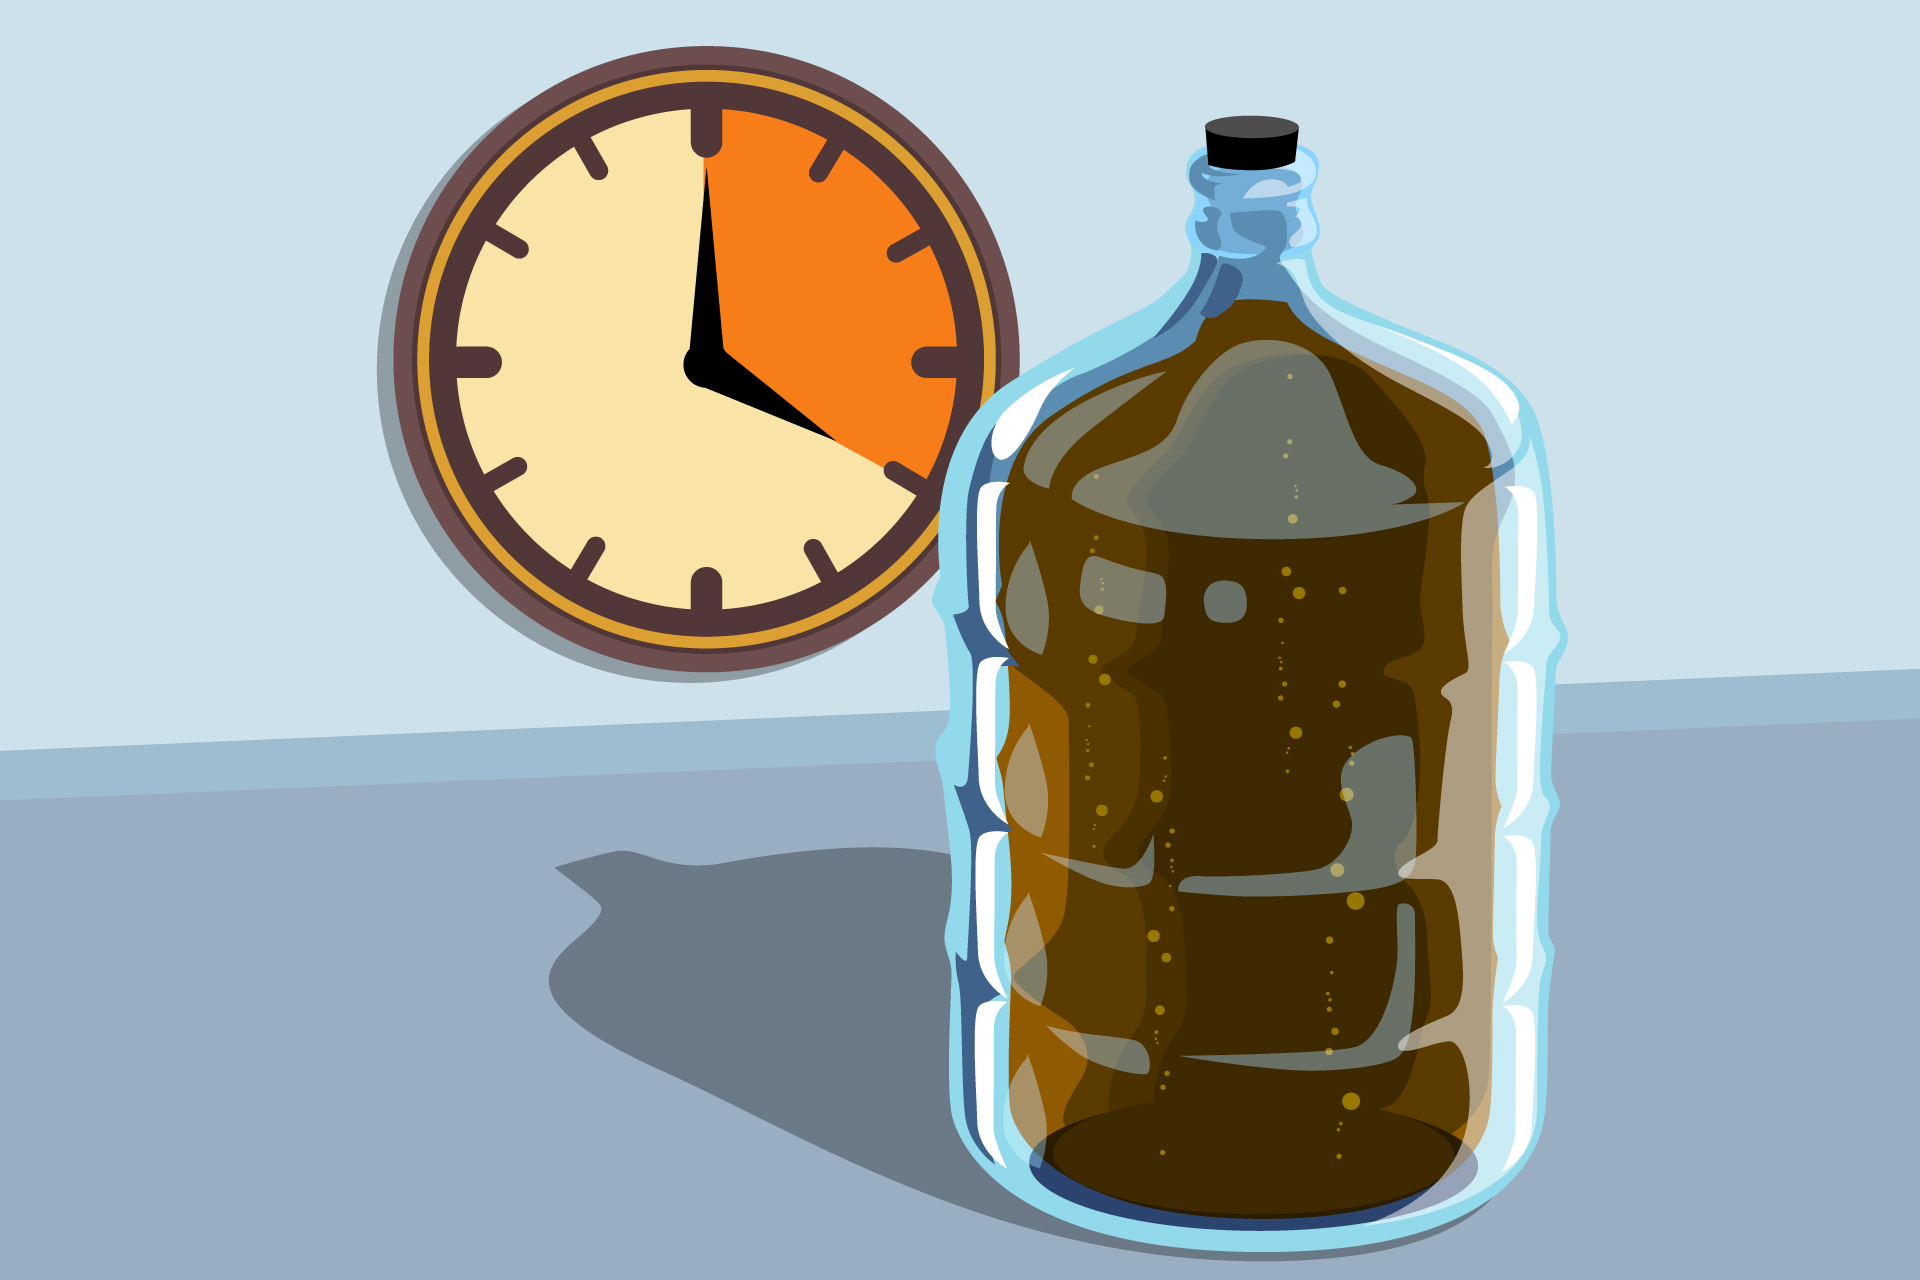 Illustration of fermenting beer in glass carboy